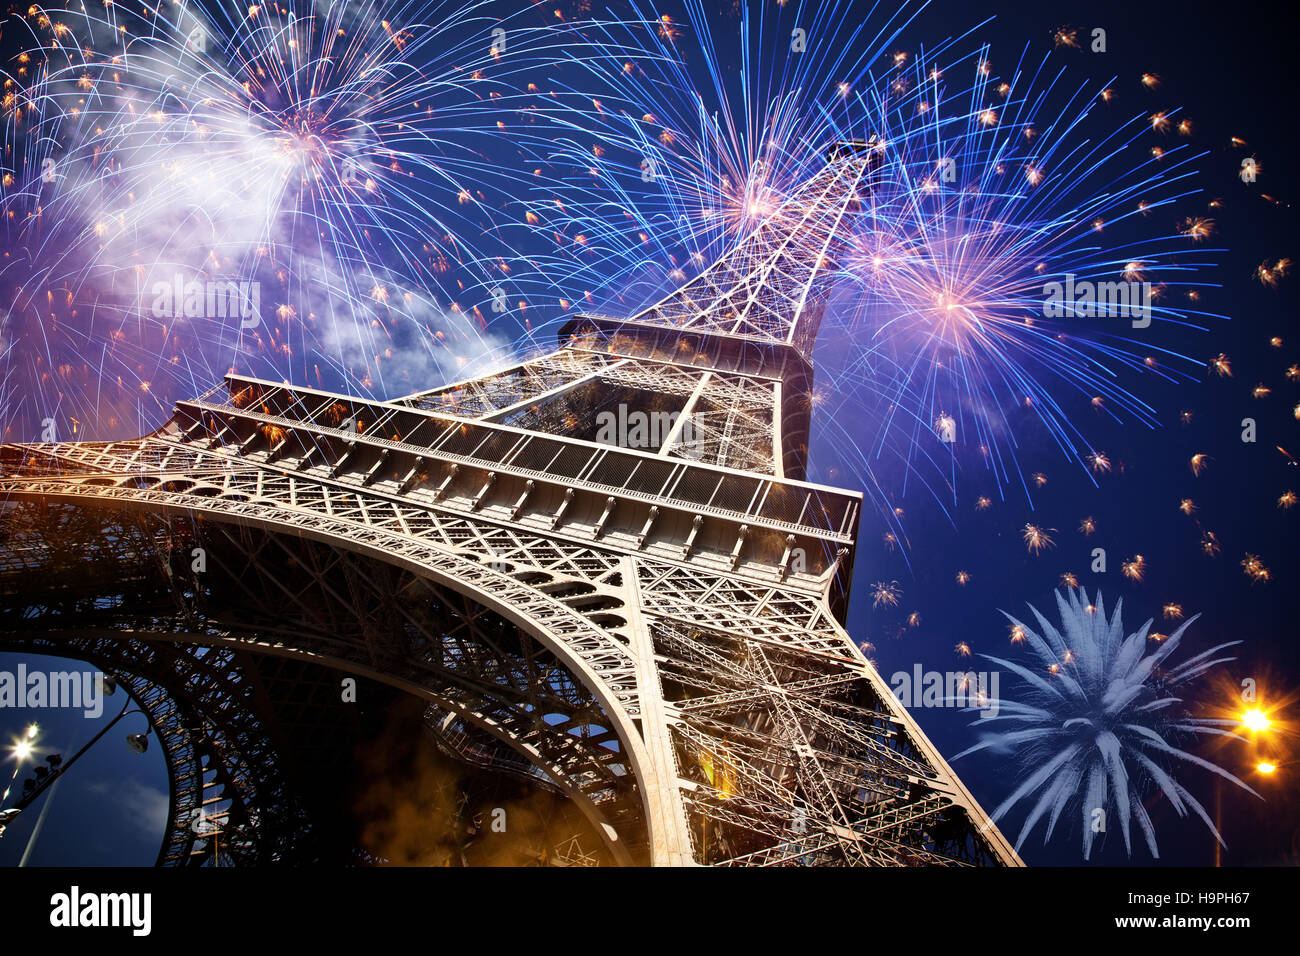 eiffel tower with fireworks, celebration of the new year in paris